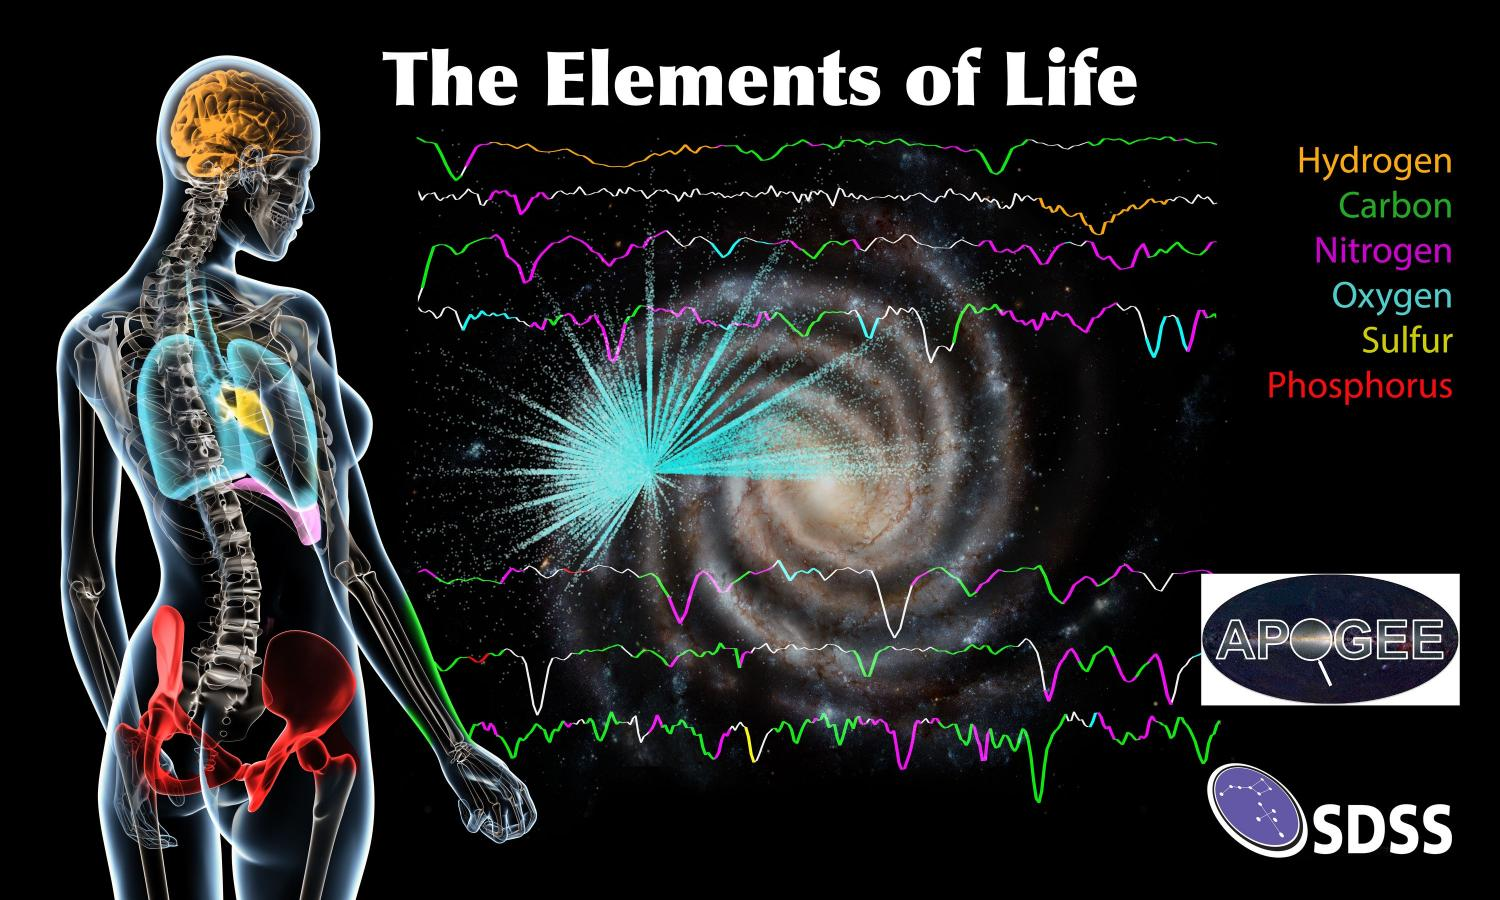 The Elements Of Life Mapped Across The Milky Way By Sdss